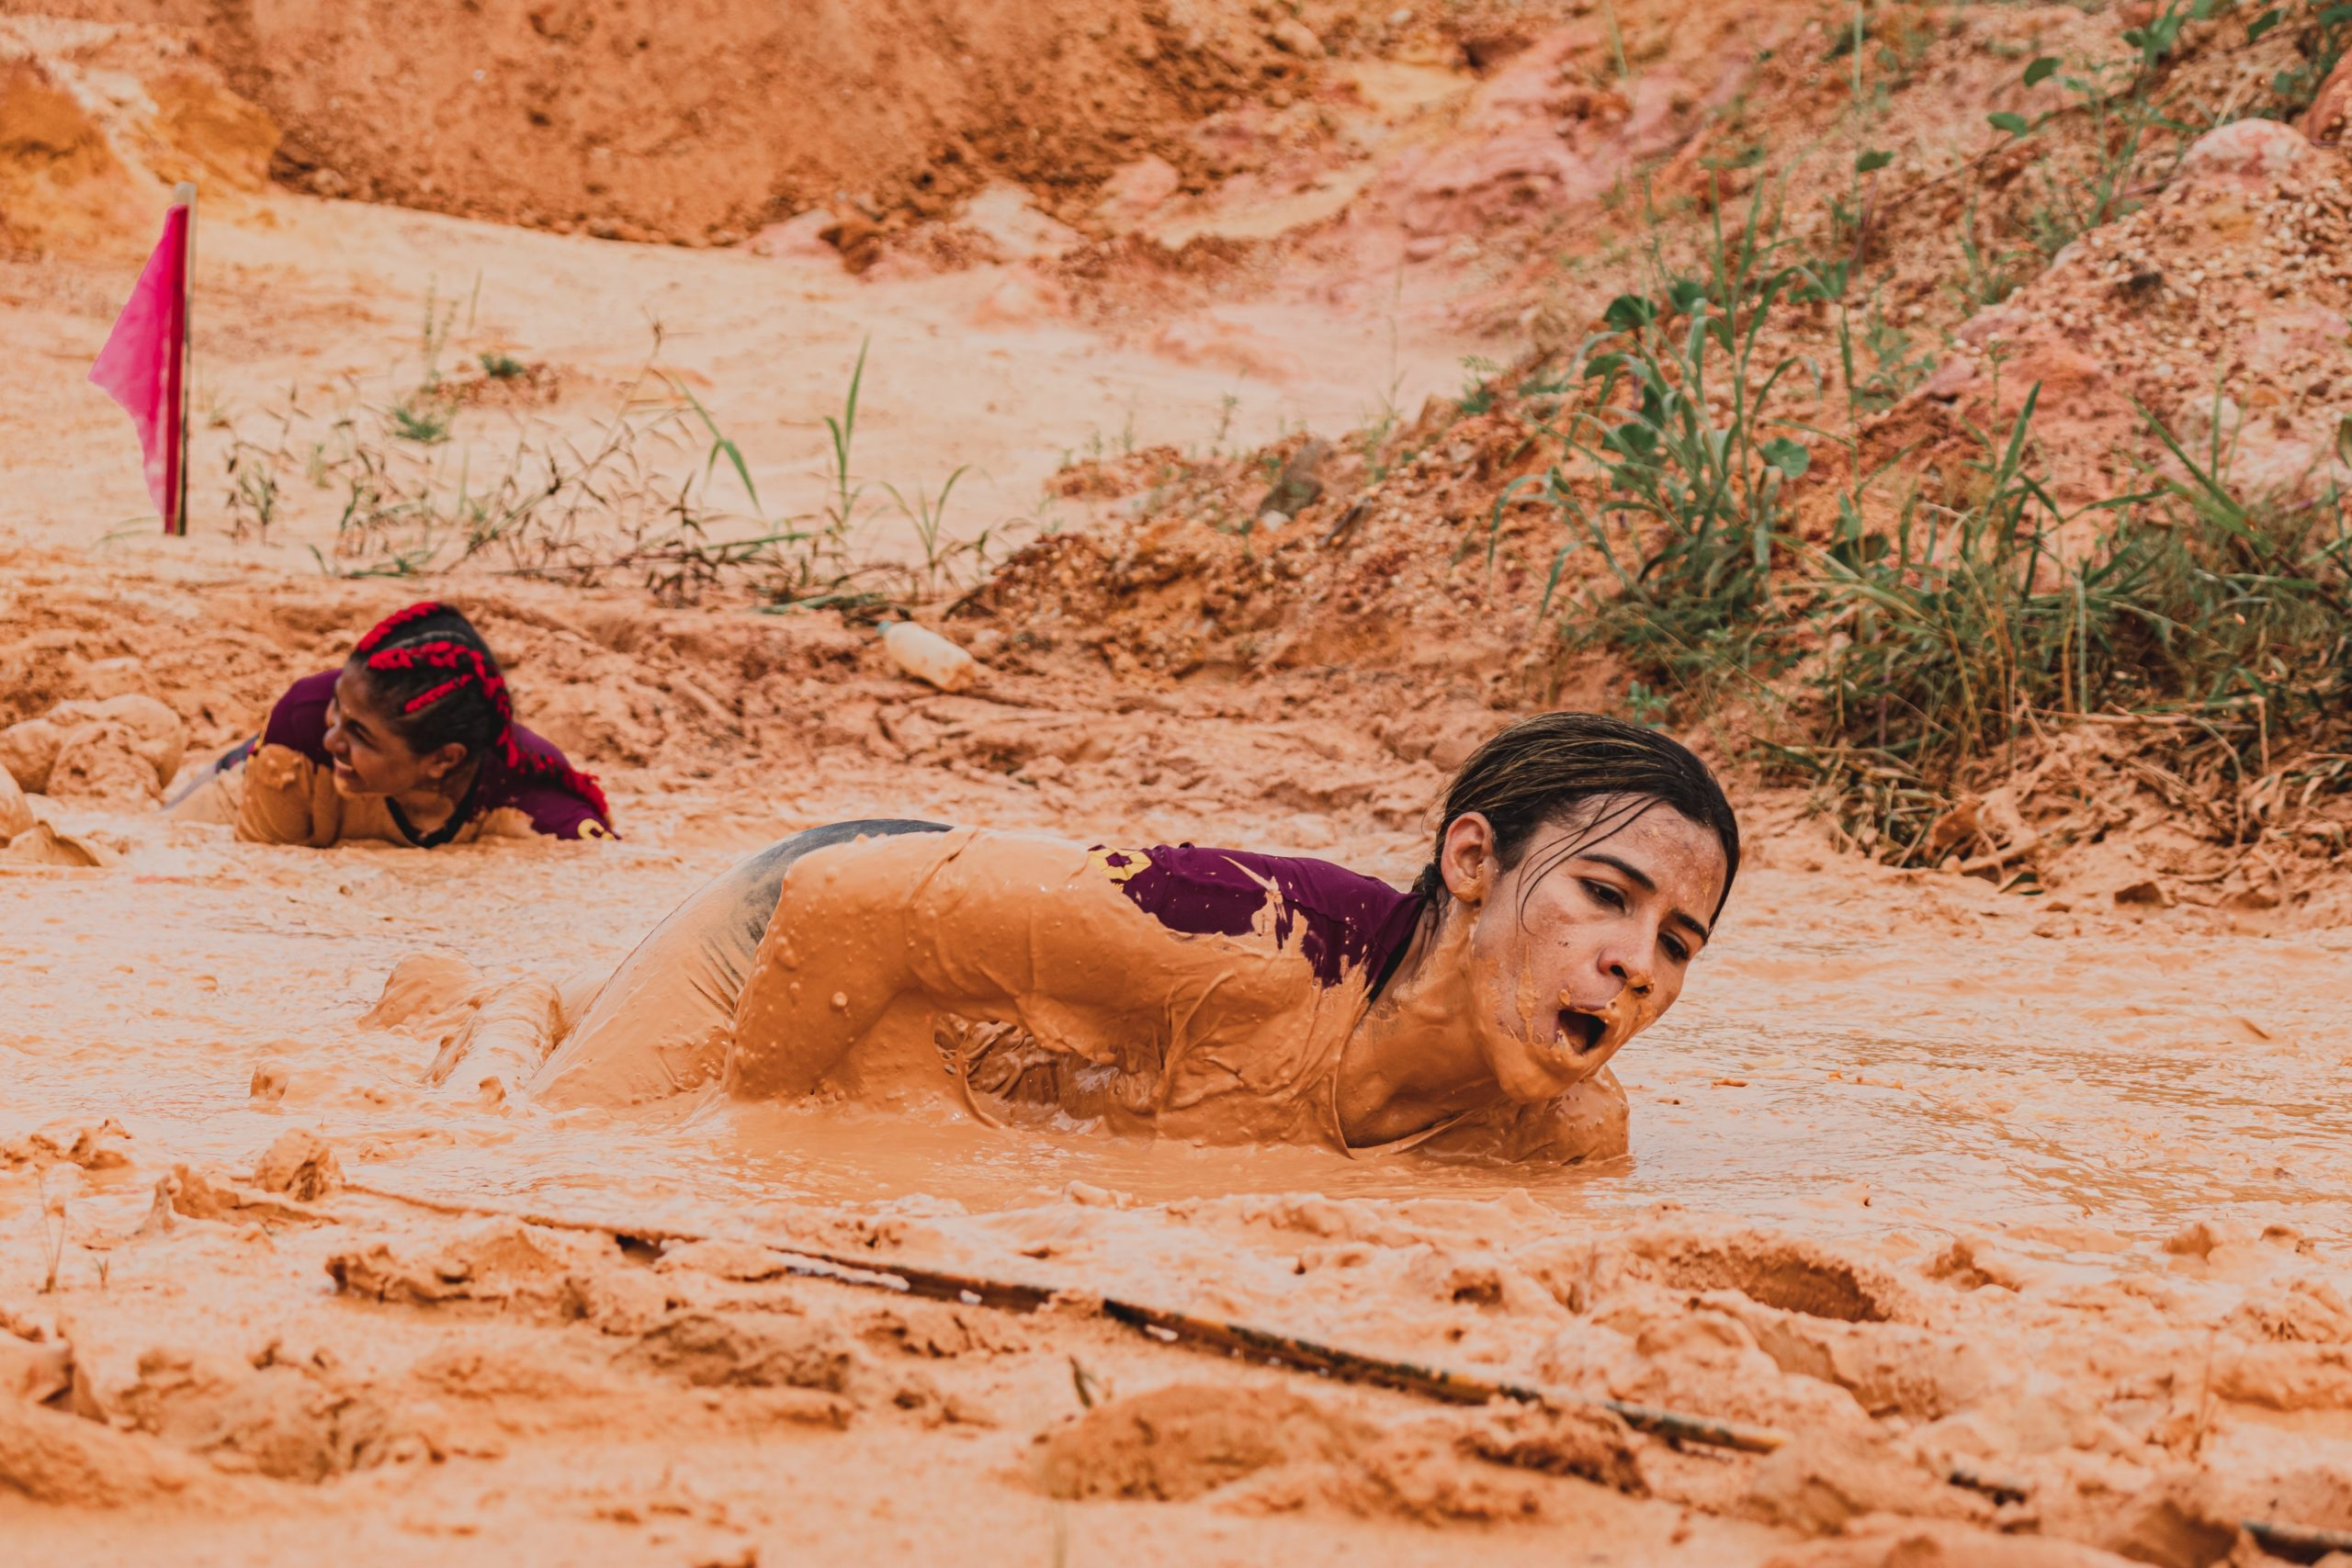 Woman in a muddy event